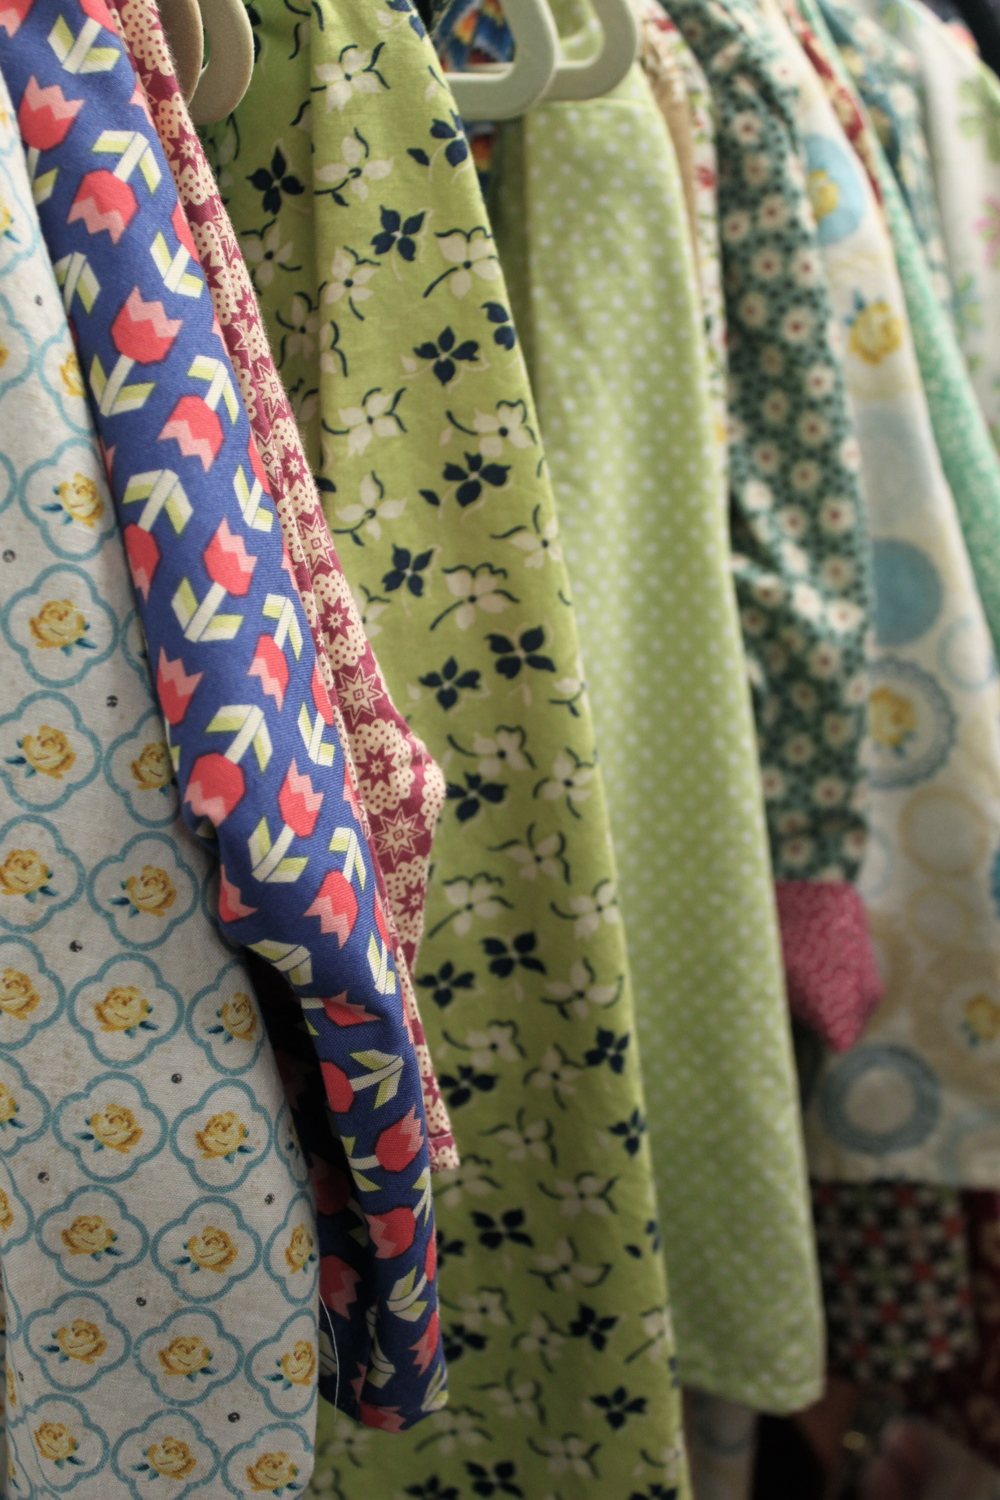 Awesome fabrics found nowhere else.